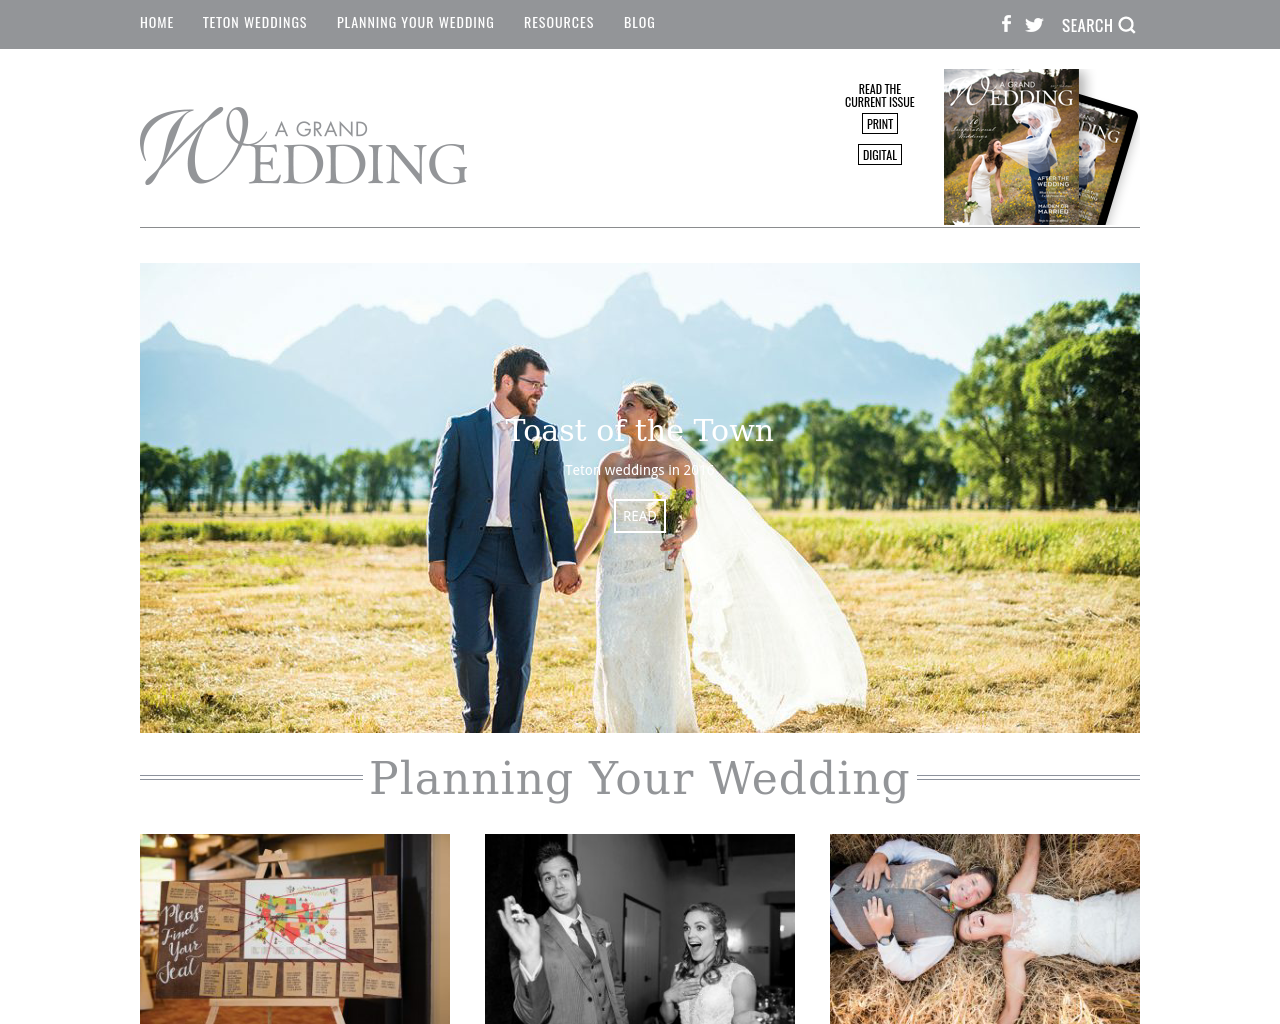 A-Grand-Wedding-&-Event-Planner-Advertising-Reviews-Pricing